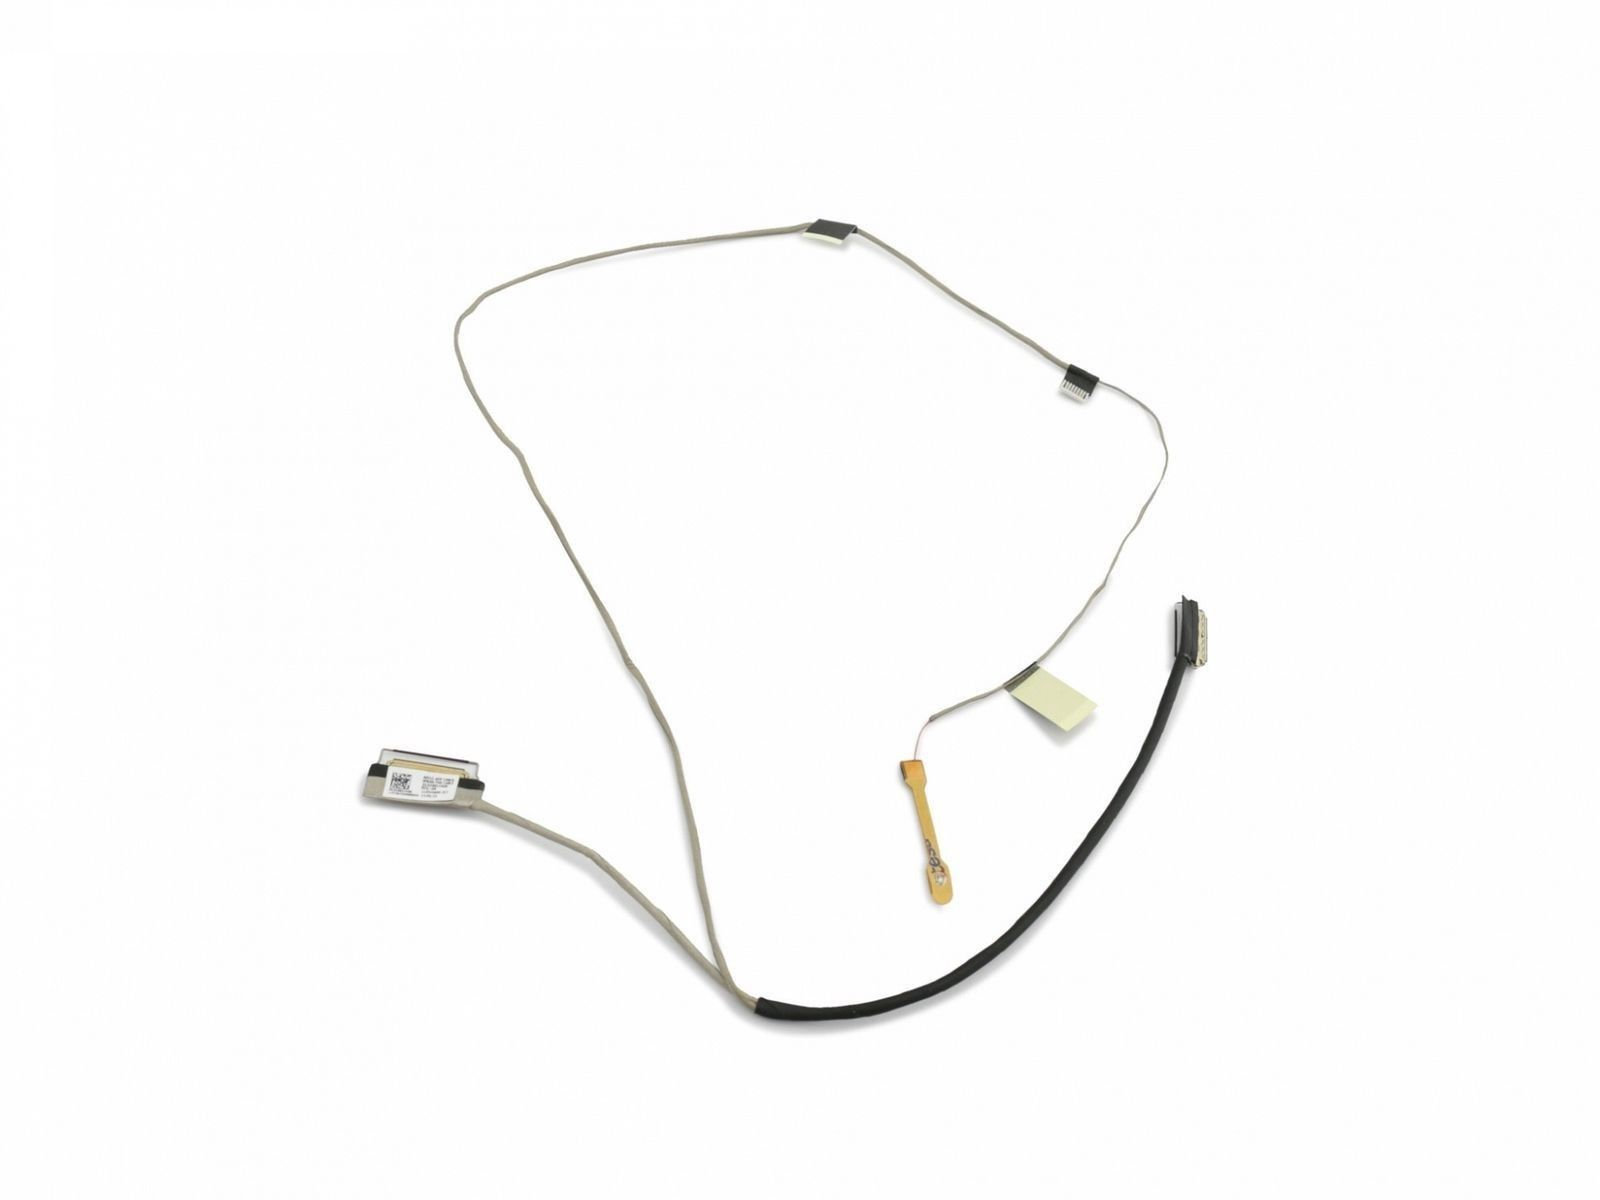 Lenovo Lcd Cable  00HT981